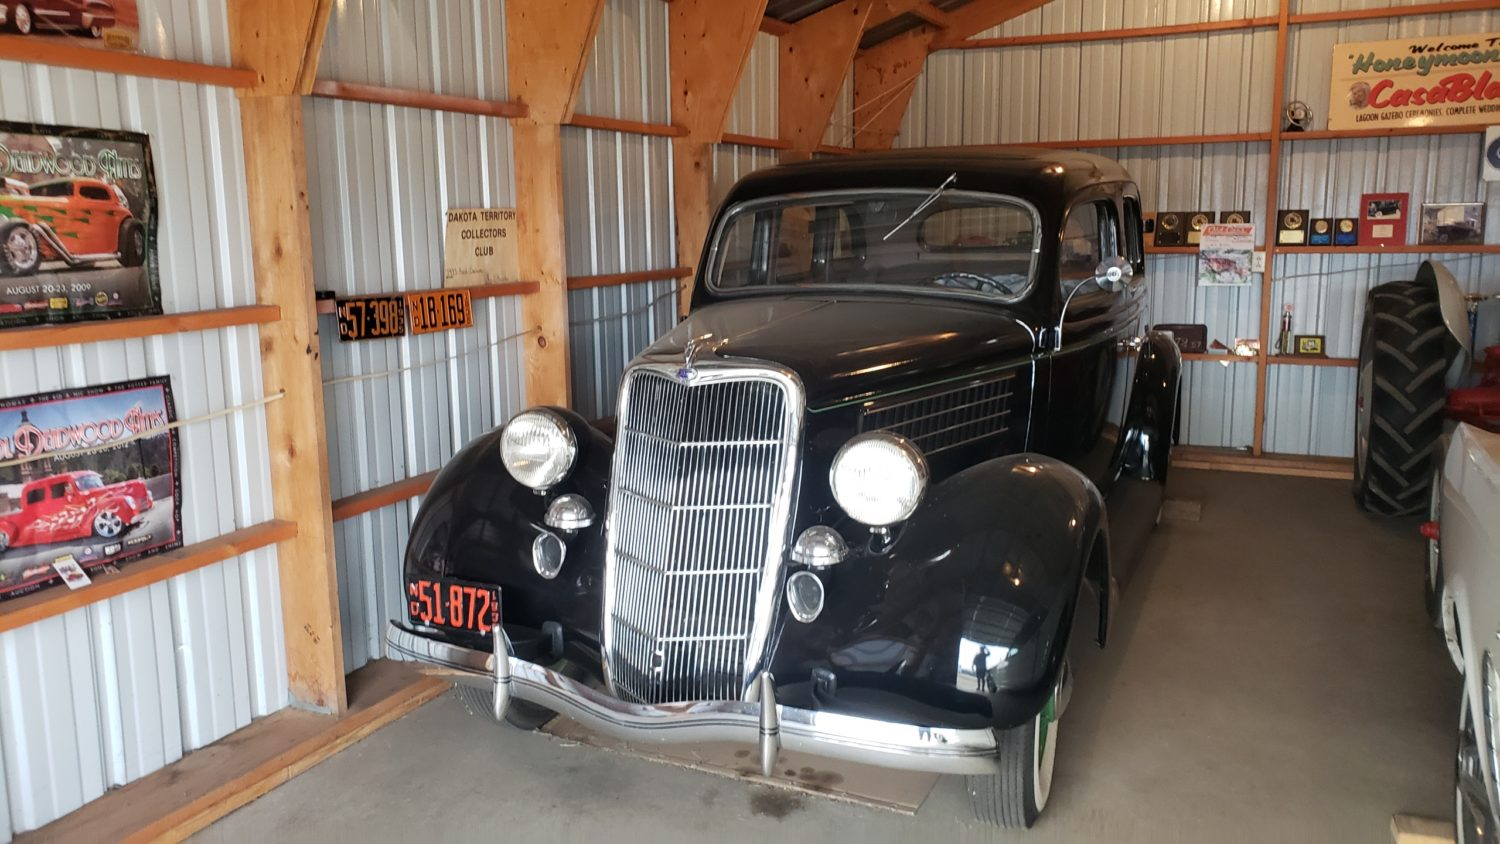 Fabulous Collector Cars, Antique Tractors, Memorabilia & More! The Krinke Collection - image 1